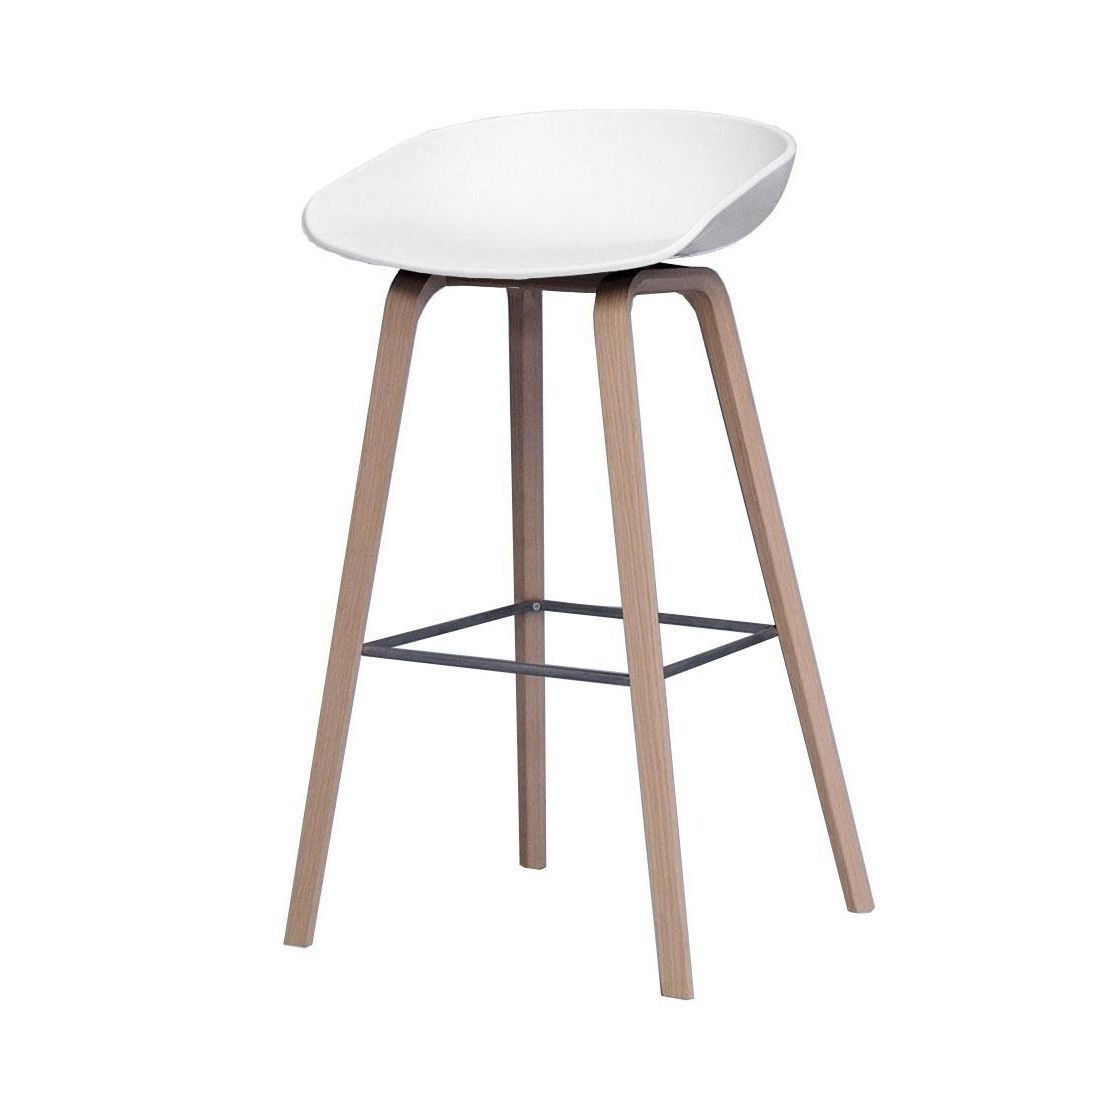 About a Stool AAS32 Barhocker 65cm | HAY | AmbienteDirect.com